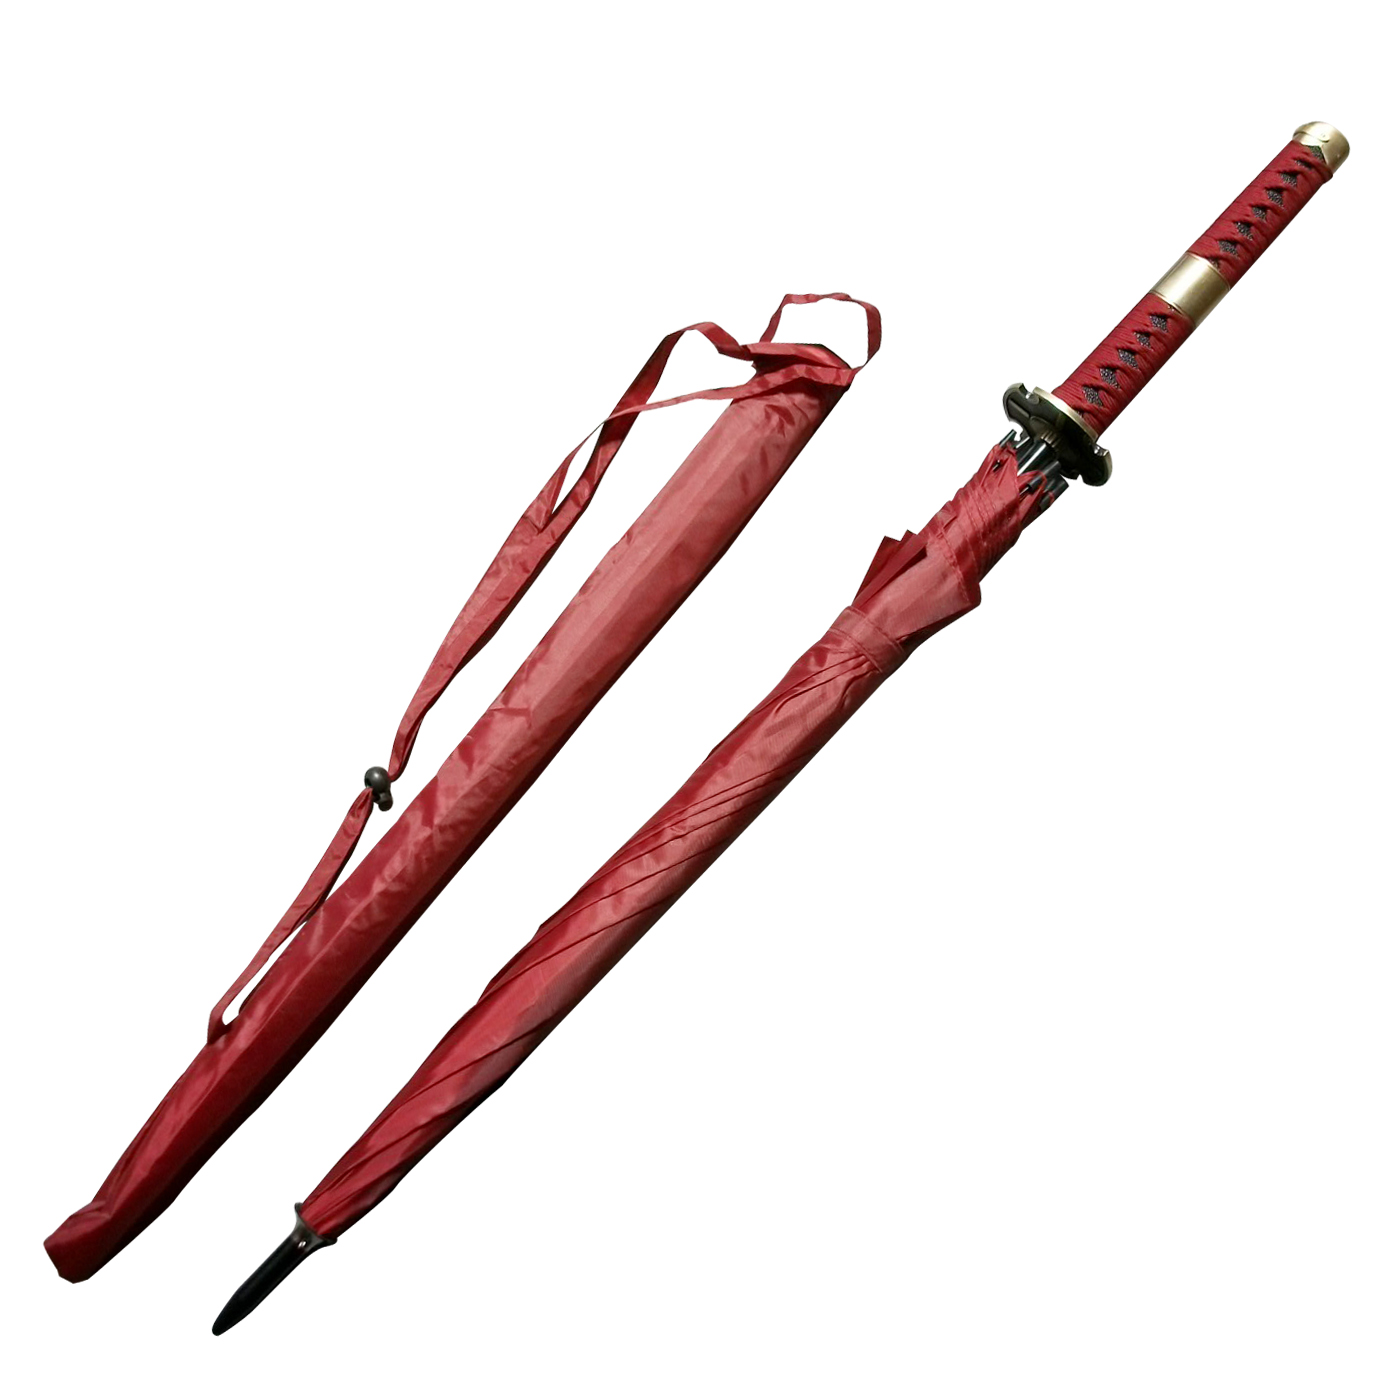 One Piece Roronoa Zoro Three Sword Style Anime Samurai Umbrella Sword